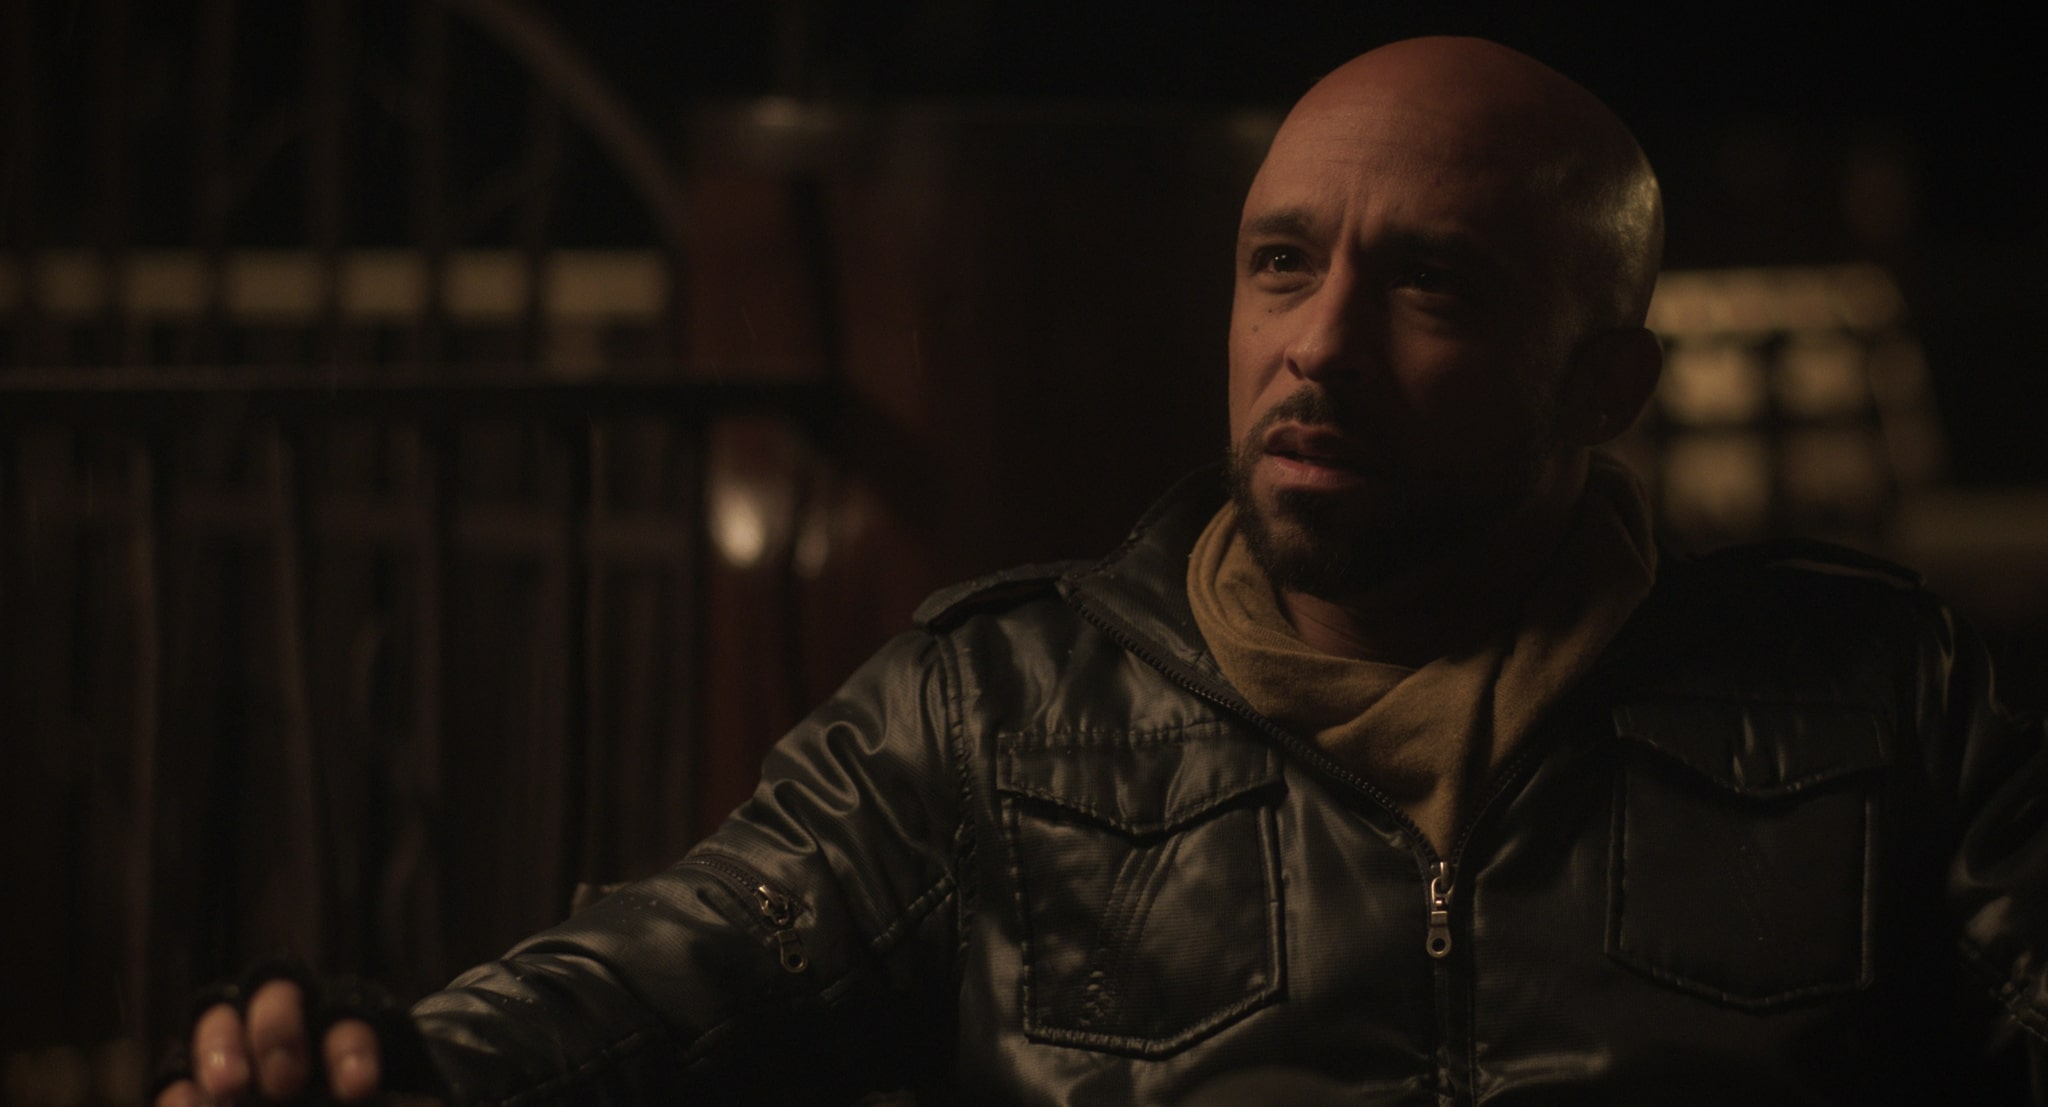 David Bianchi in Evergreen (2019)